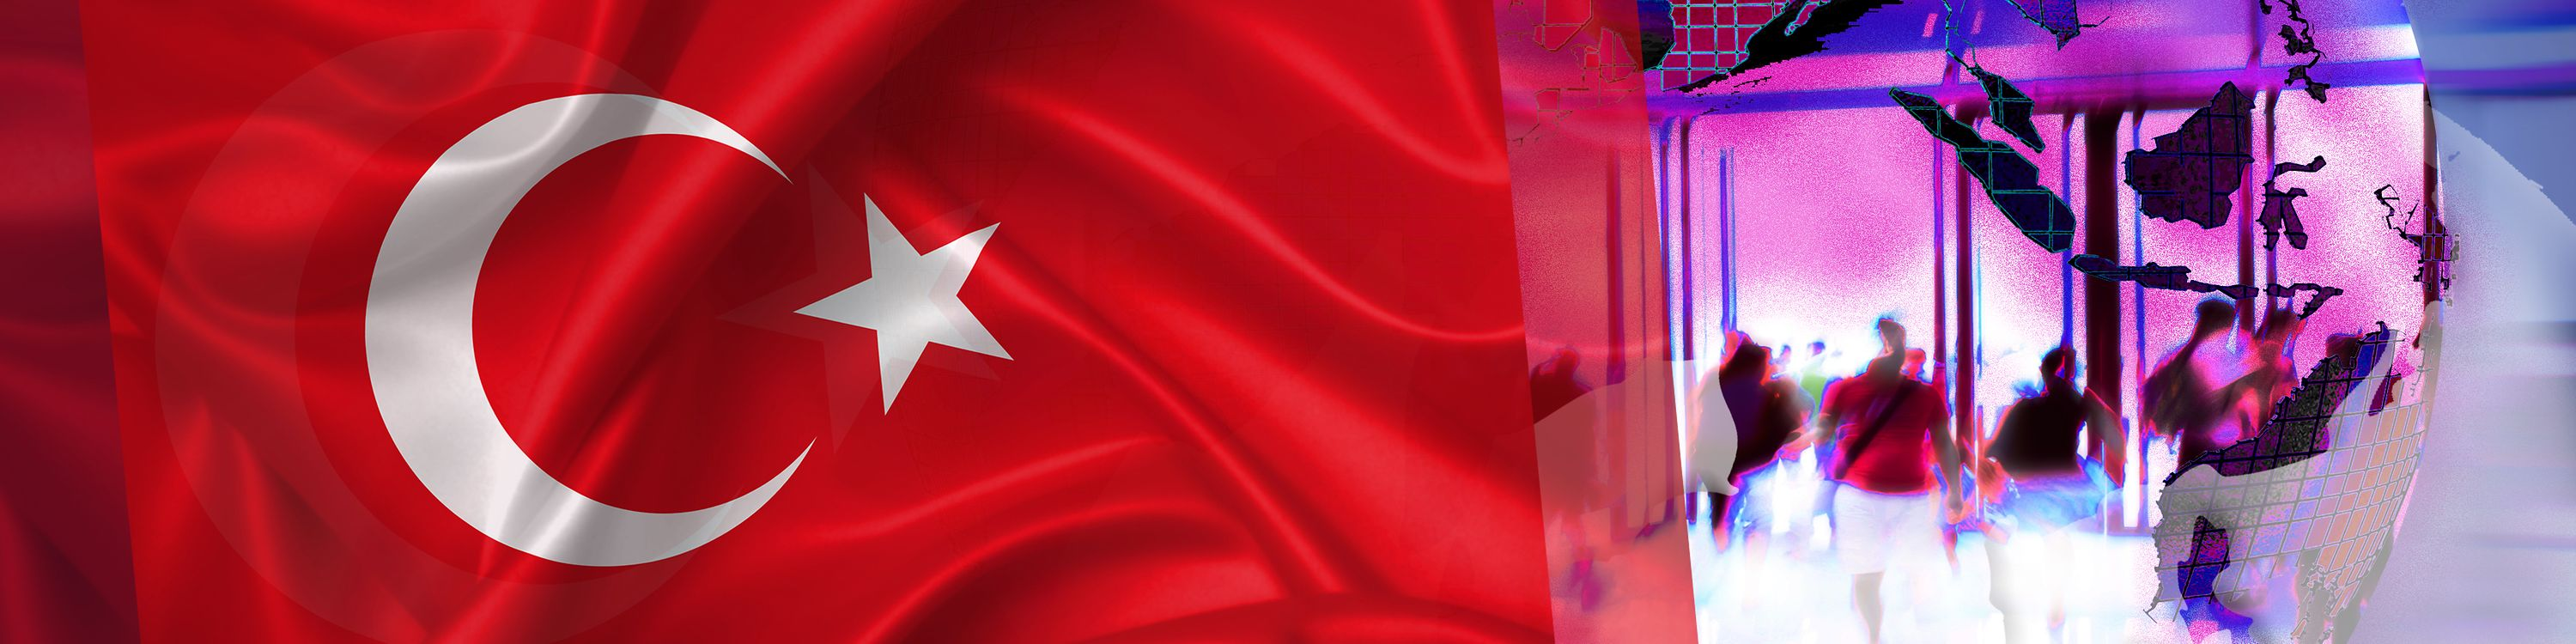 Illustration for NatCo in Turkey with country flag.